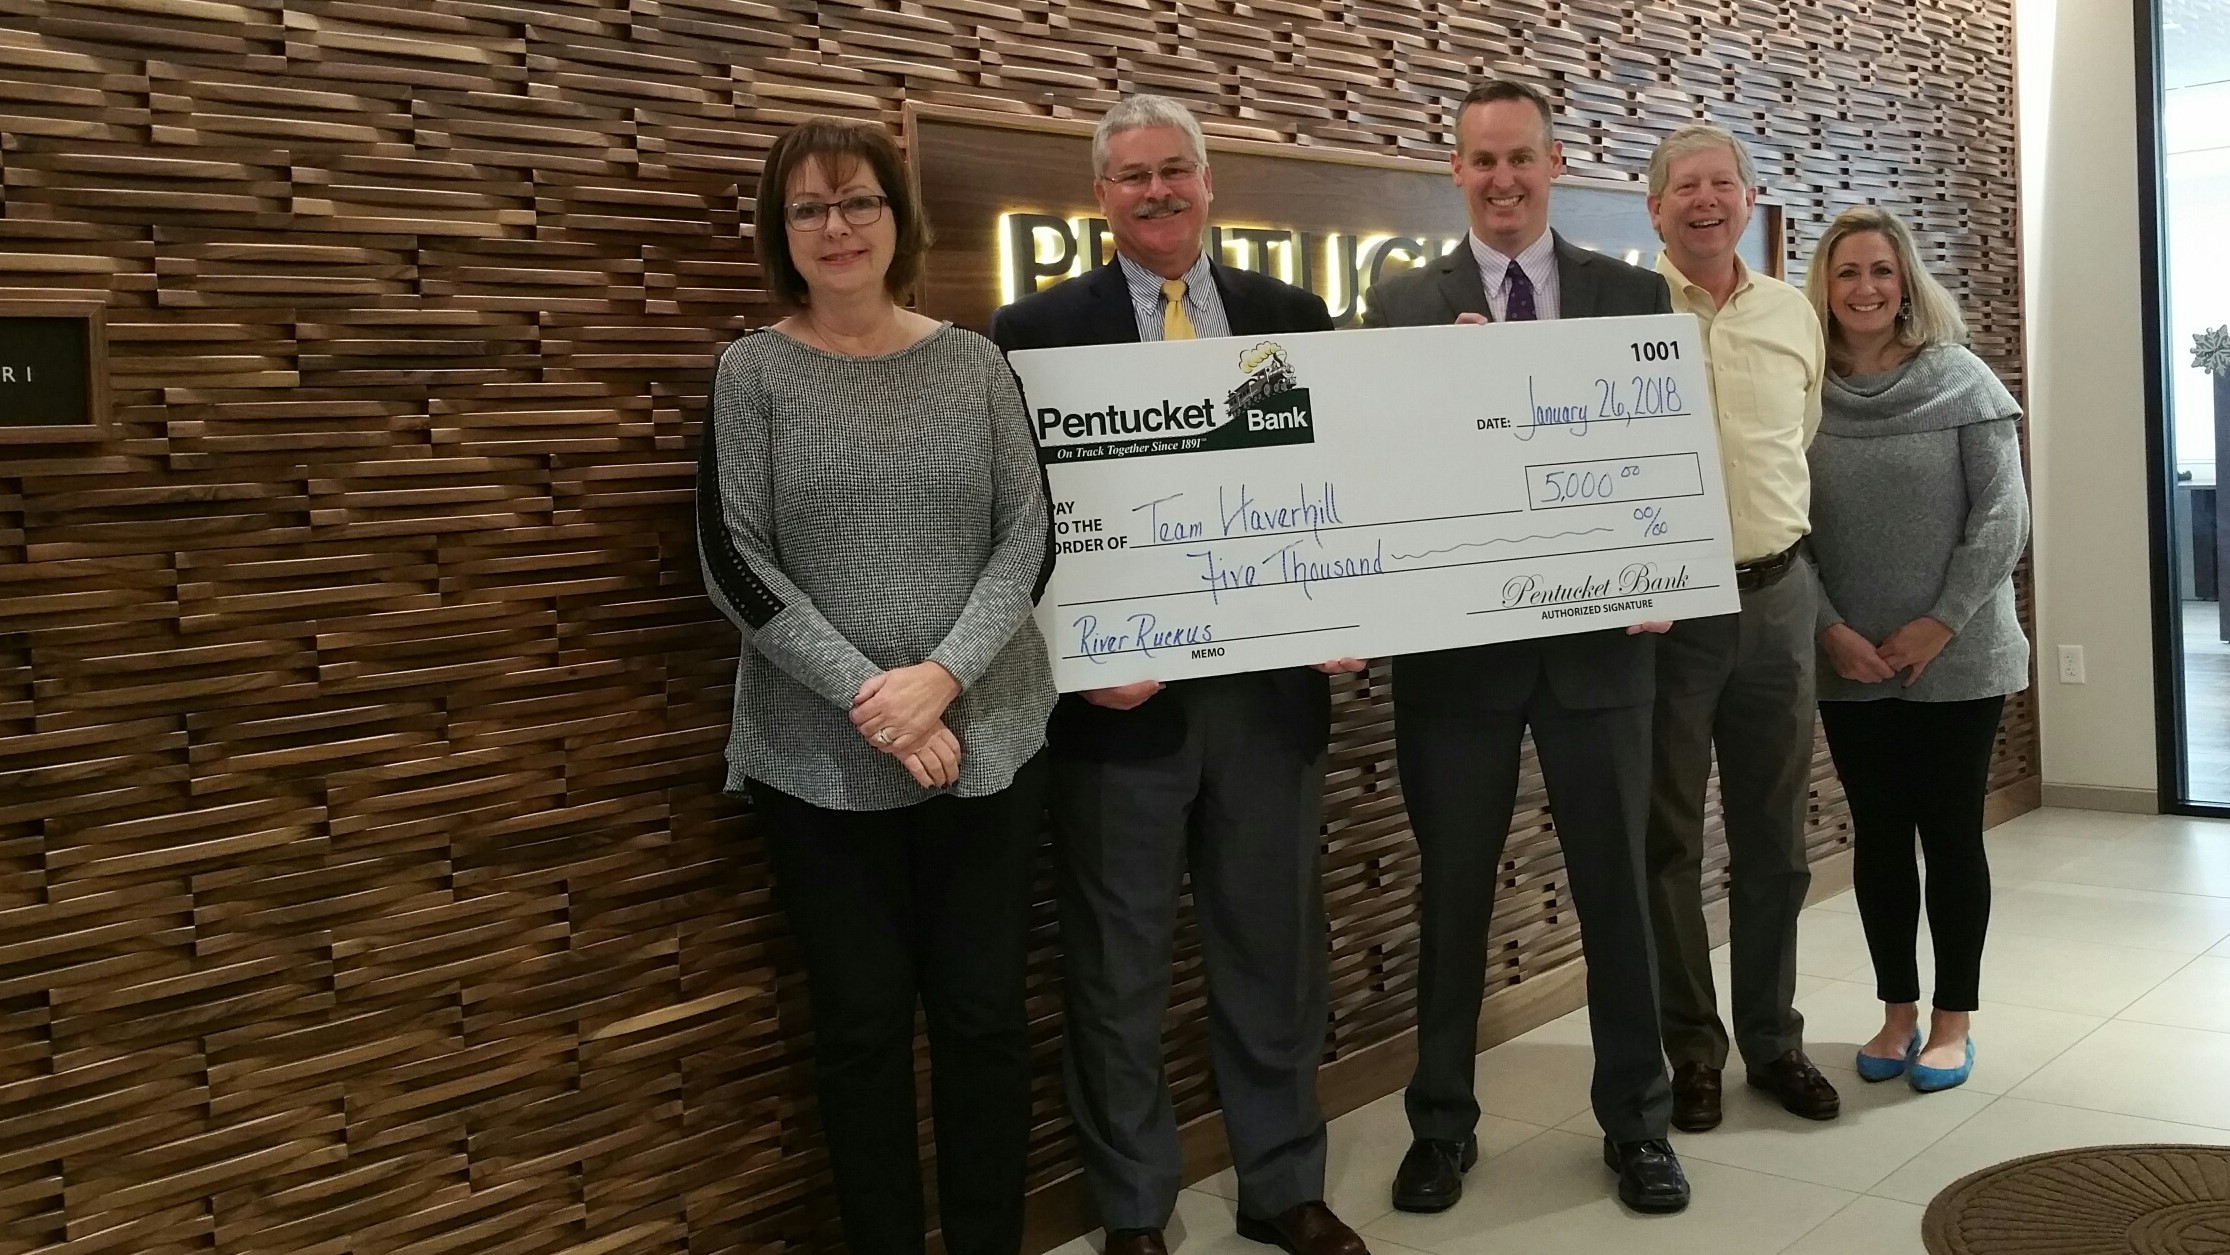 Pentucket Bank donates $5,000 to Team Haverhill